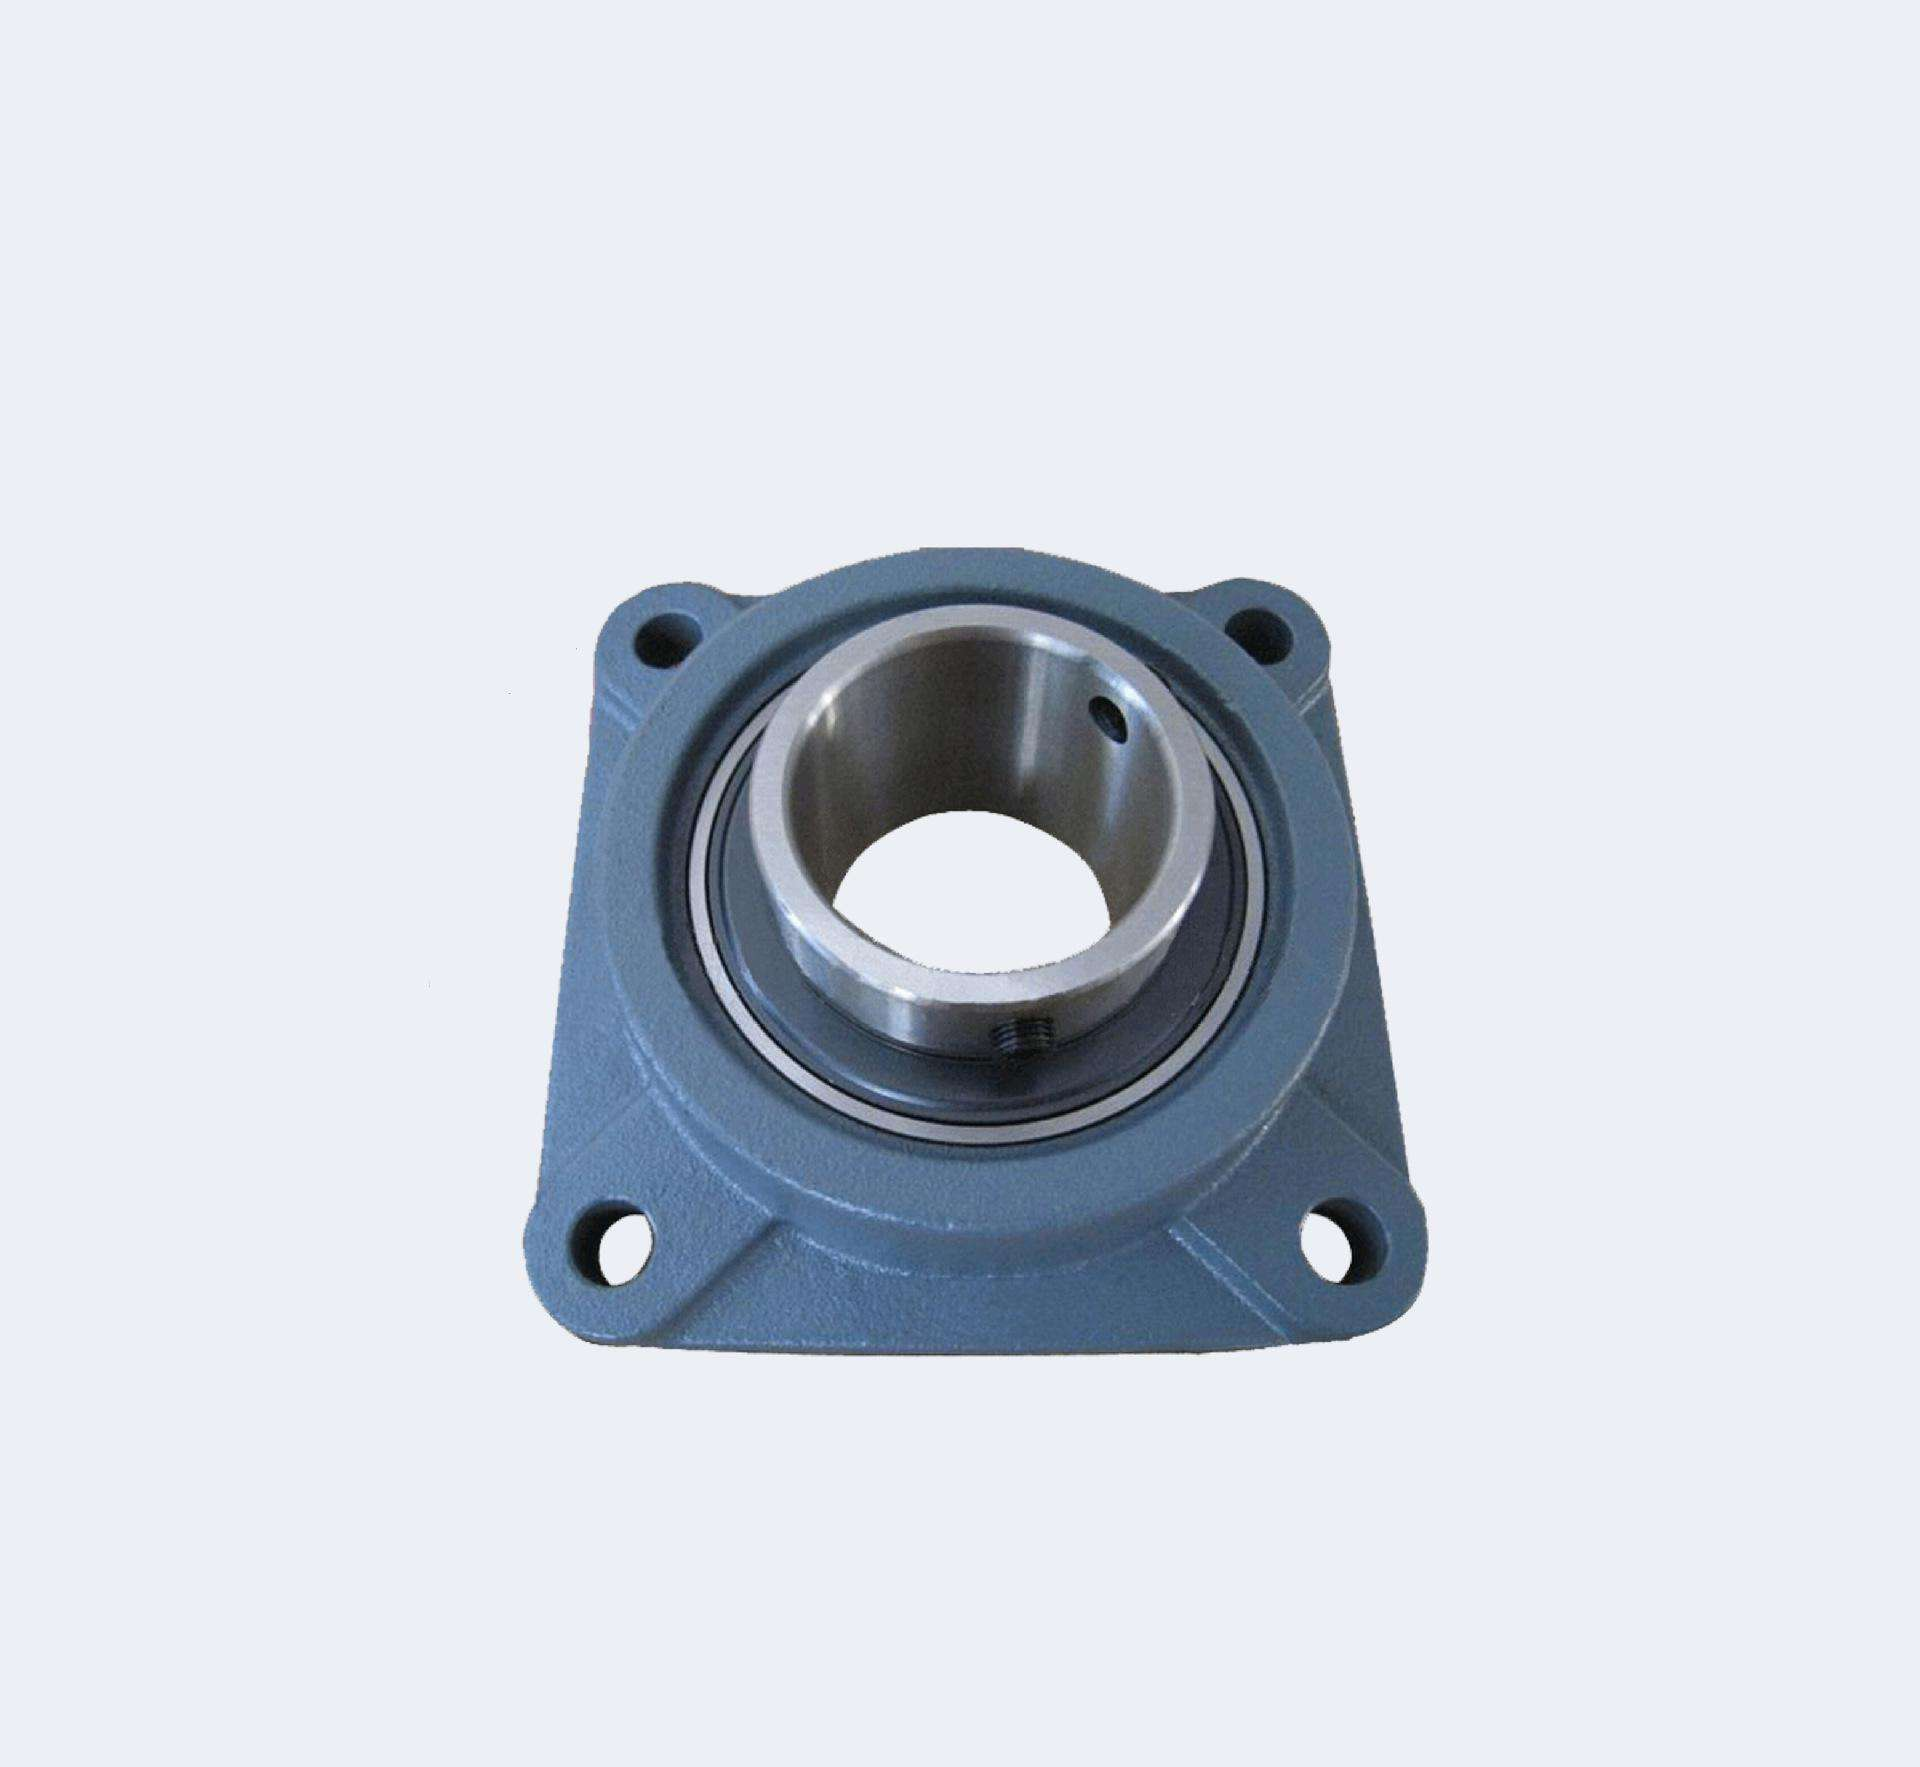 Pillow ball Rod end bearing POS10 PHS8, ball joint spherical bearings